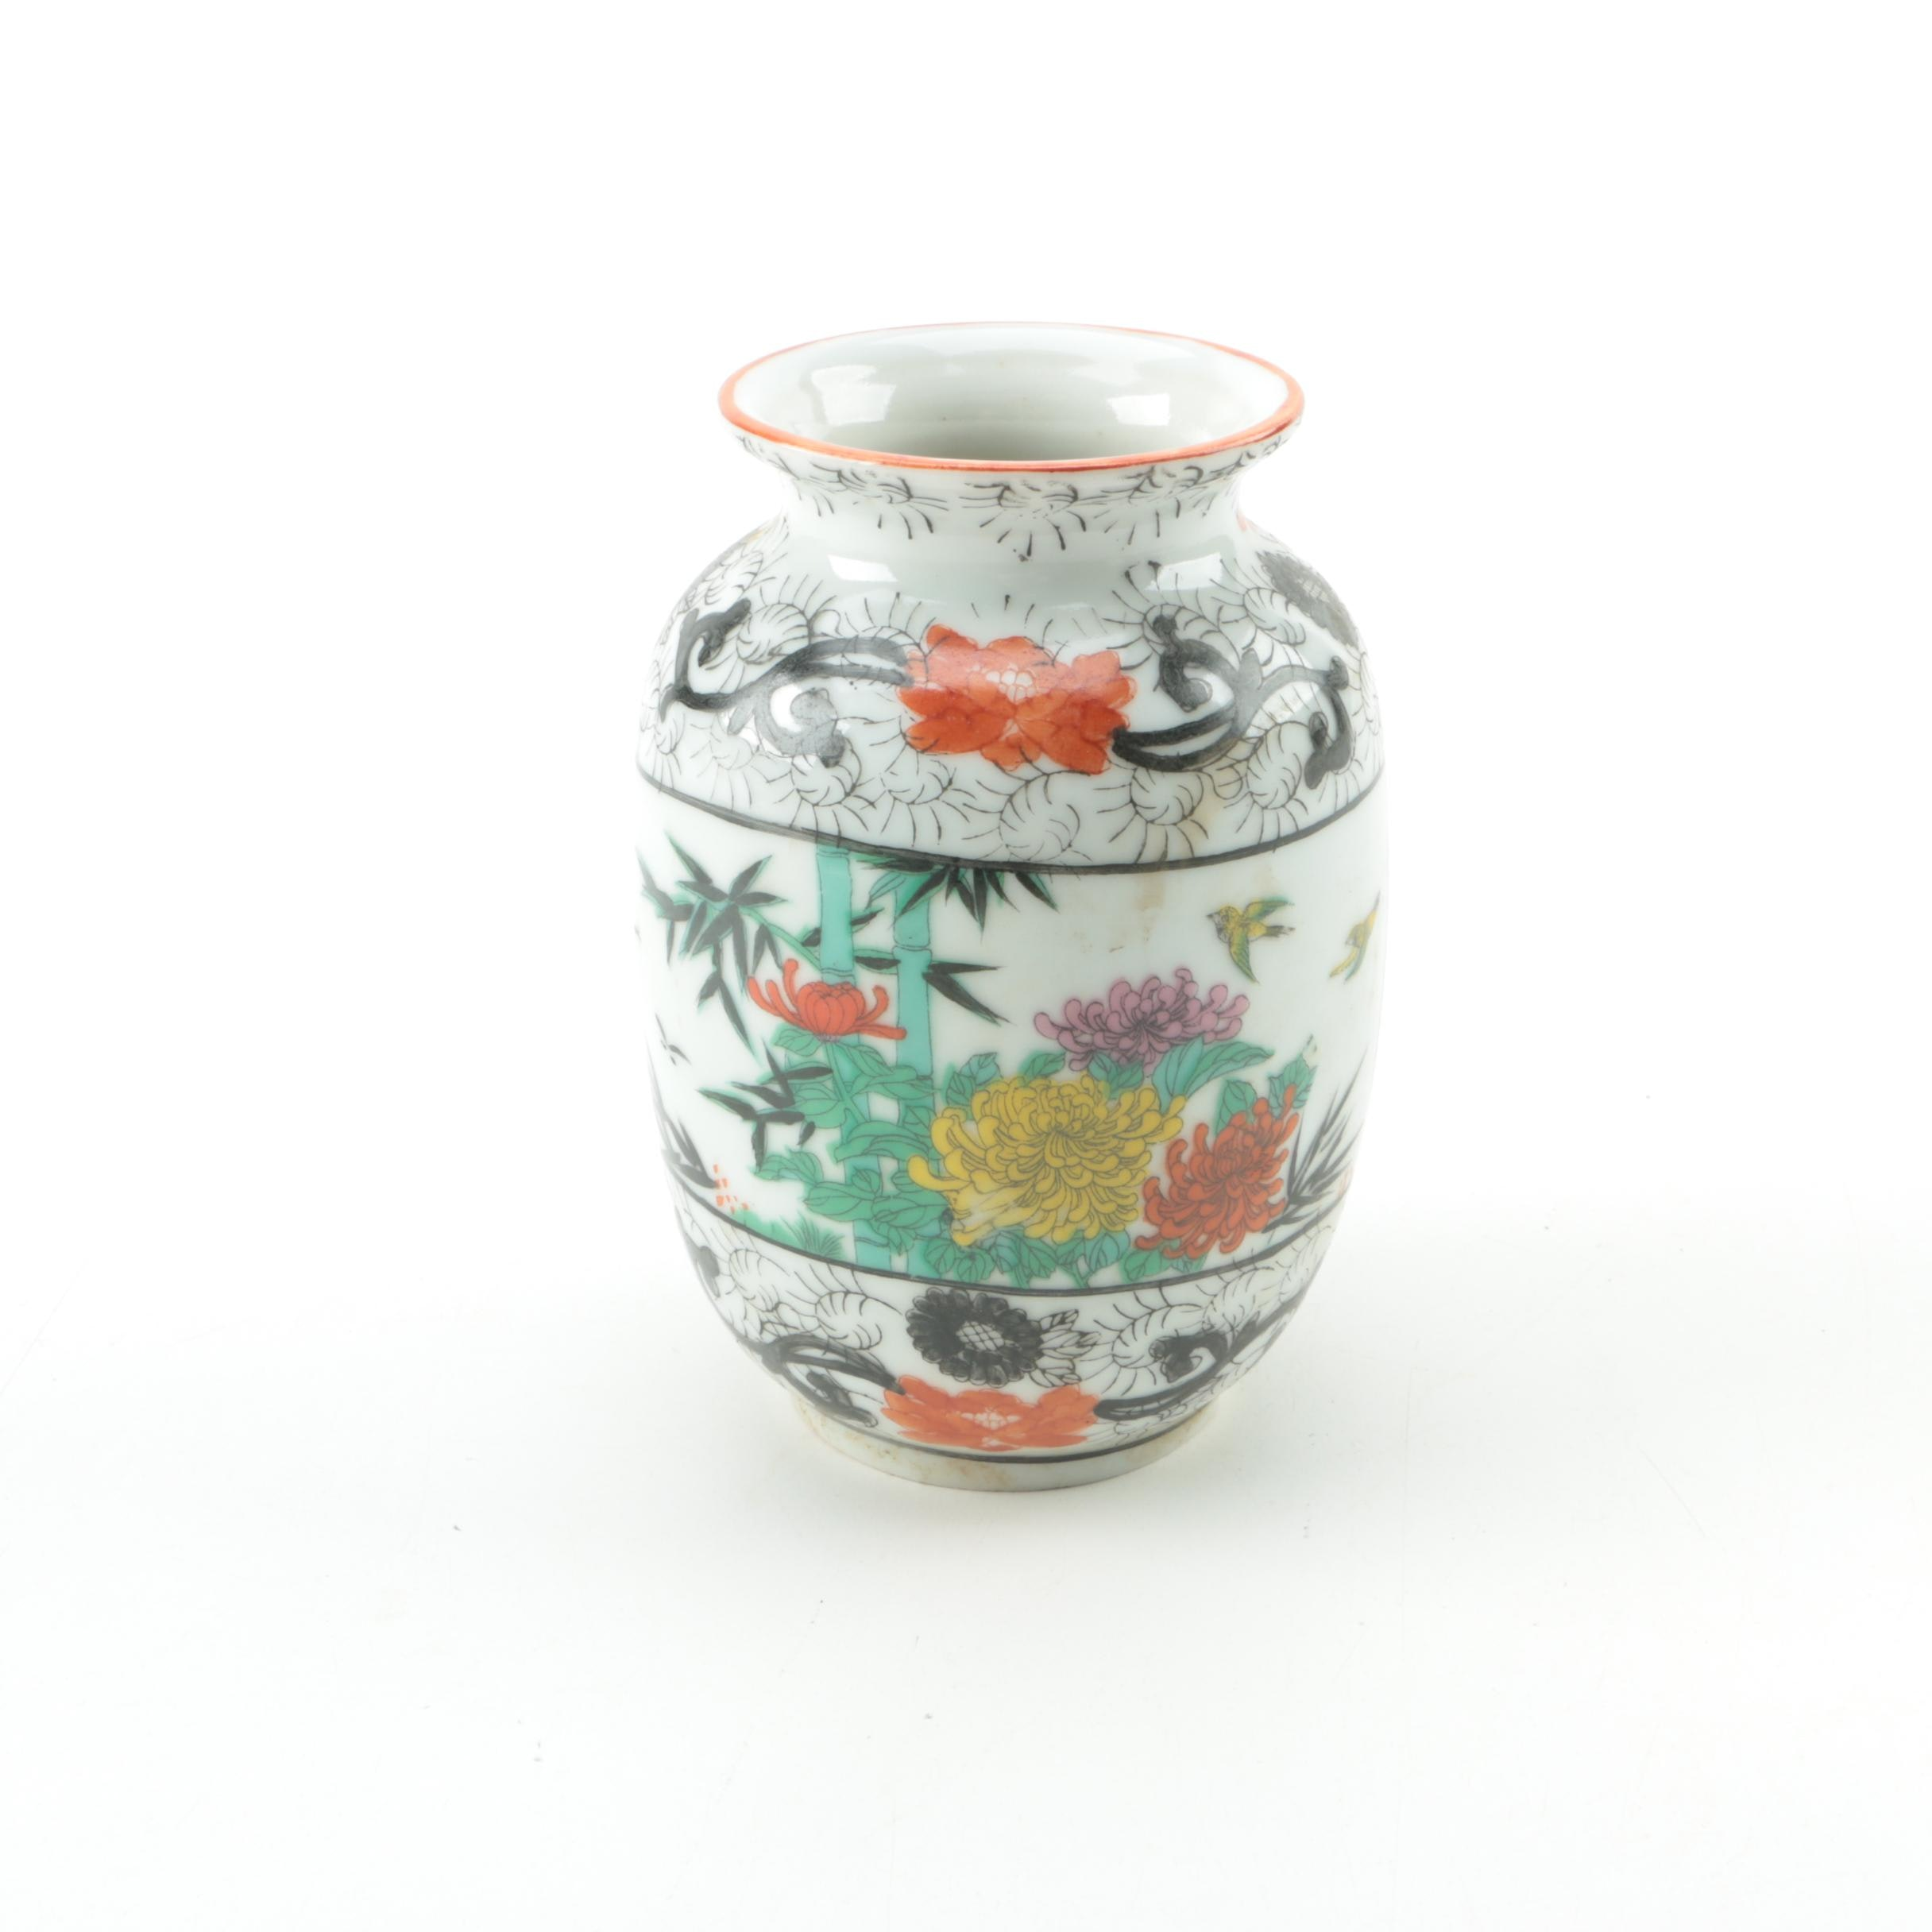 Porcelain Hand-Painted Chinese Vase